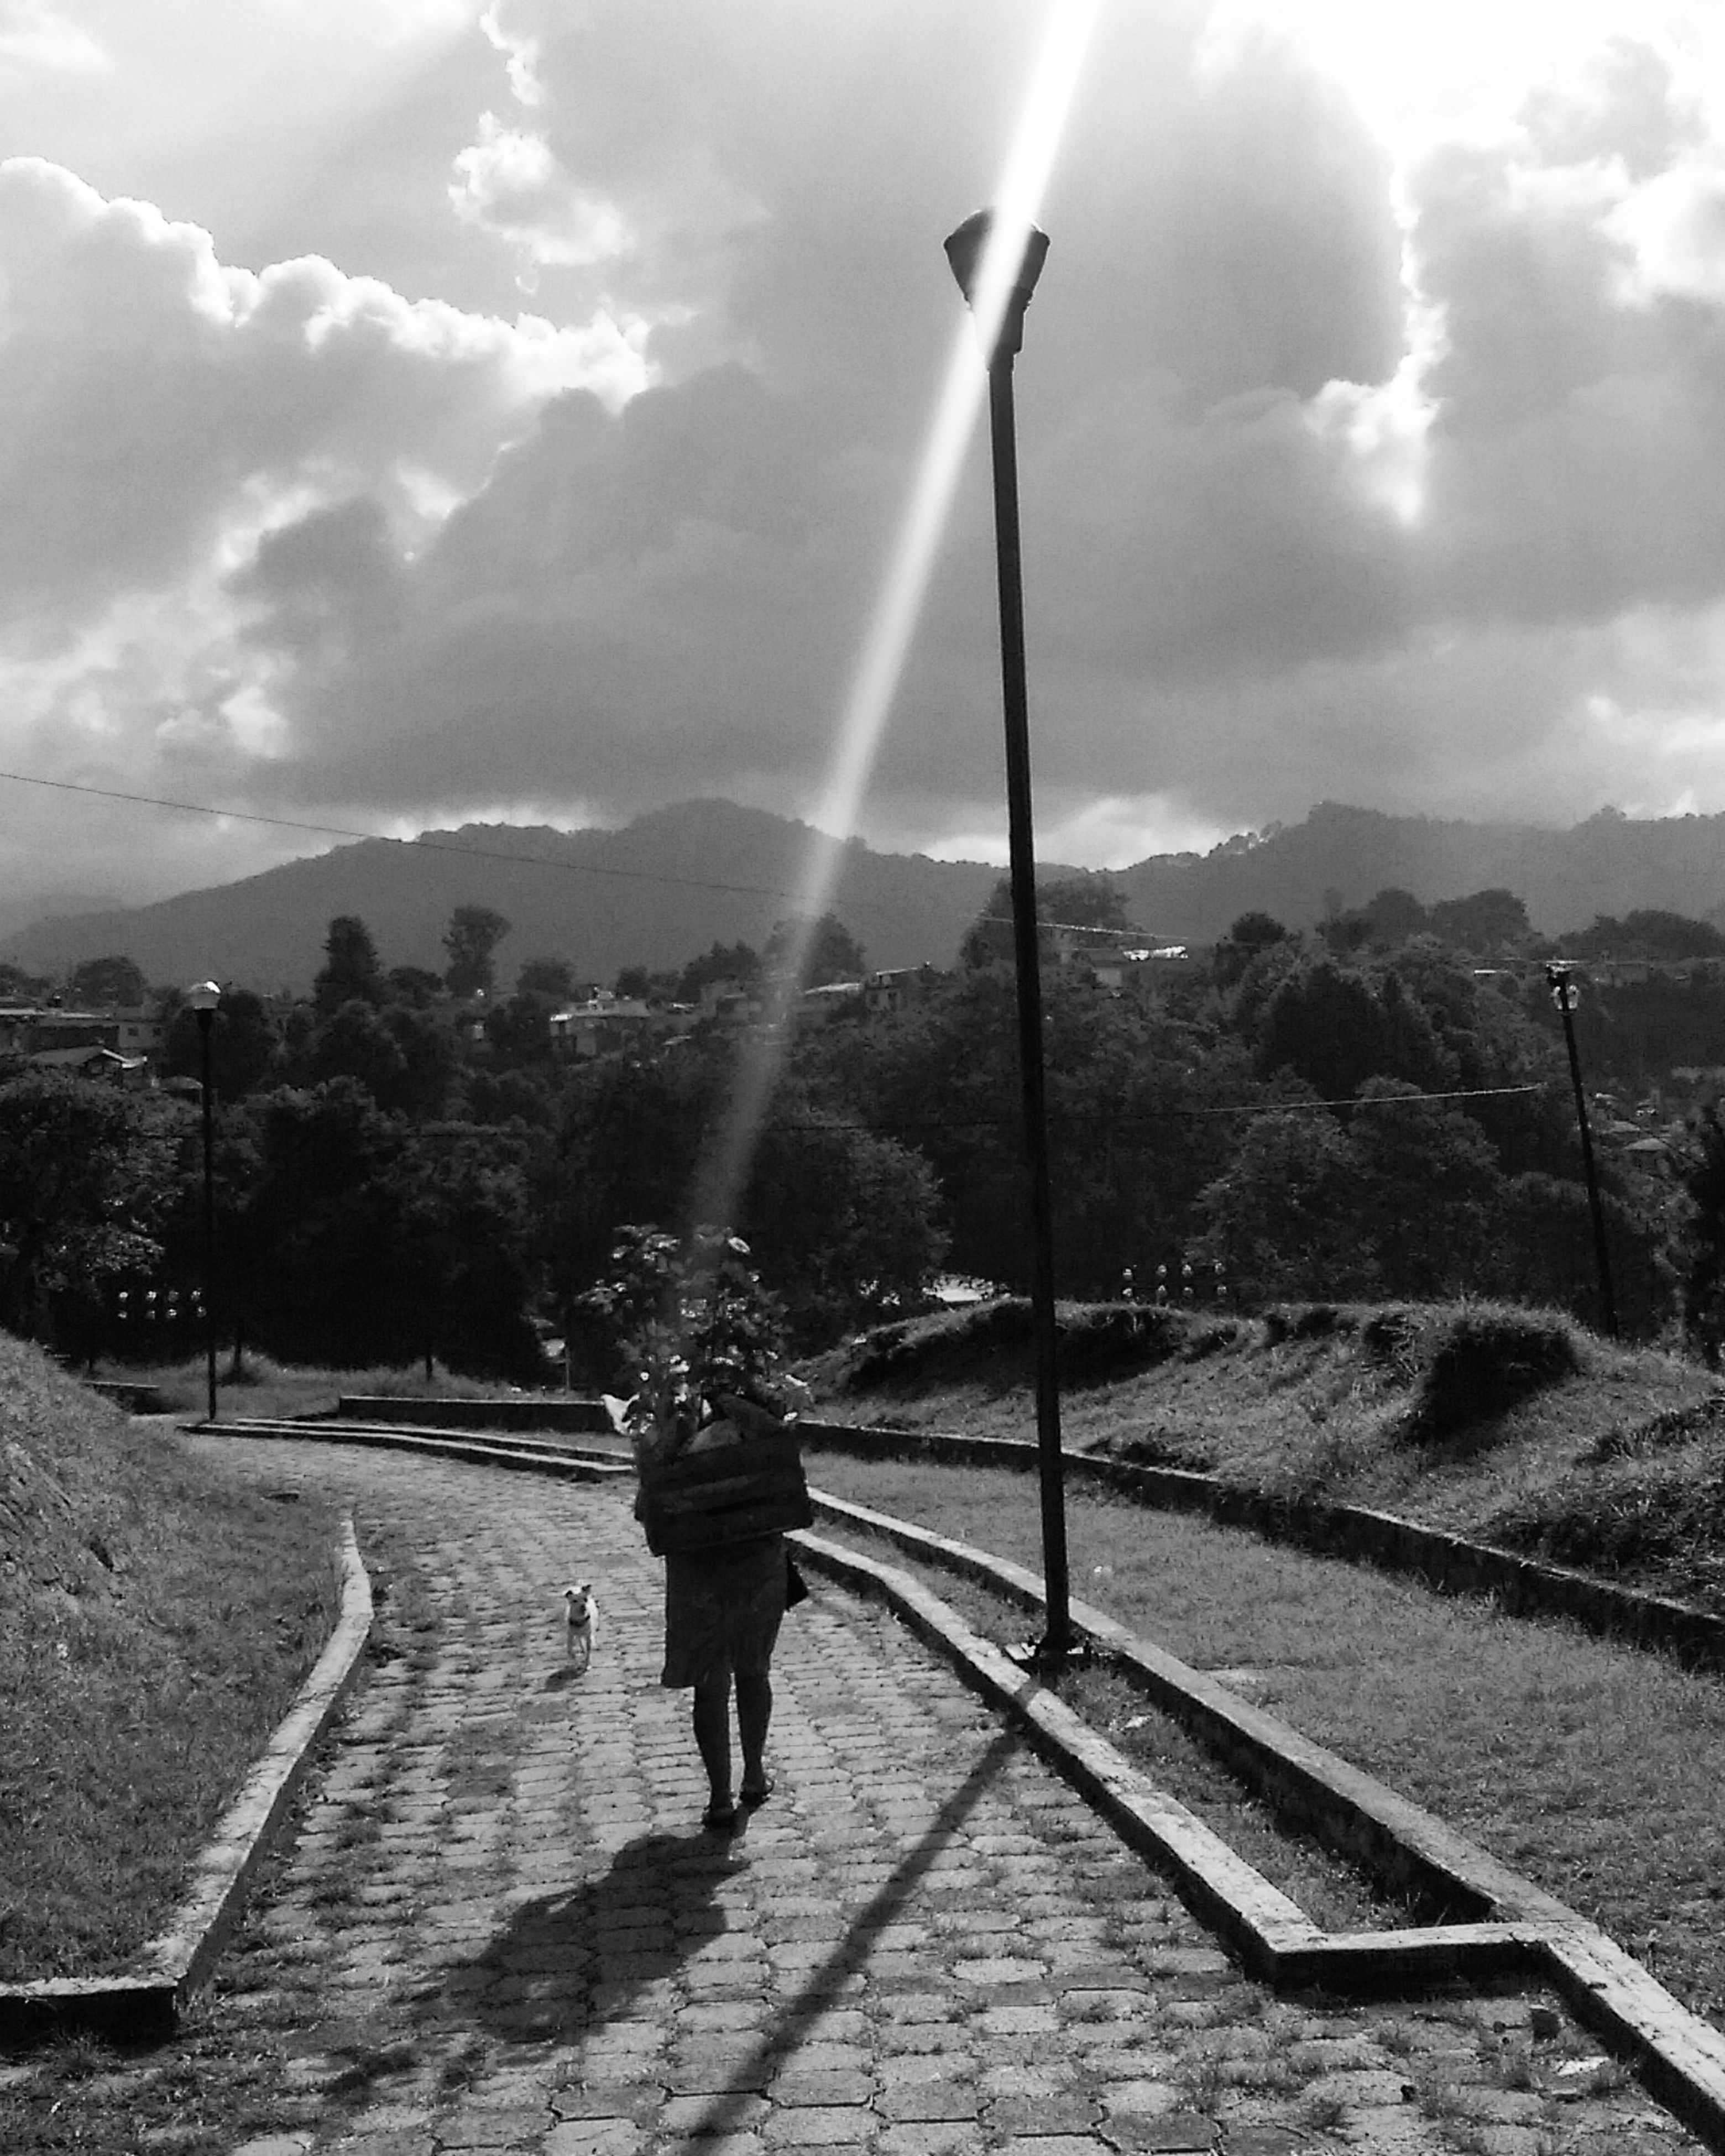 sky, lifestyles, full length, leisure activity, cloud - sky, casual clothing, sunlight, cloud, sun, sunbeam, lens flare, sunny, outdoors, day, the way forward, mountain, cloudy, nature, tourism